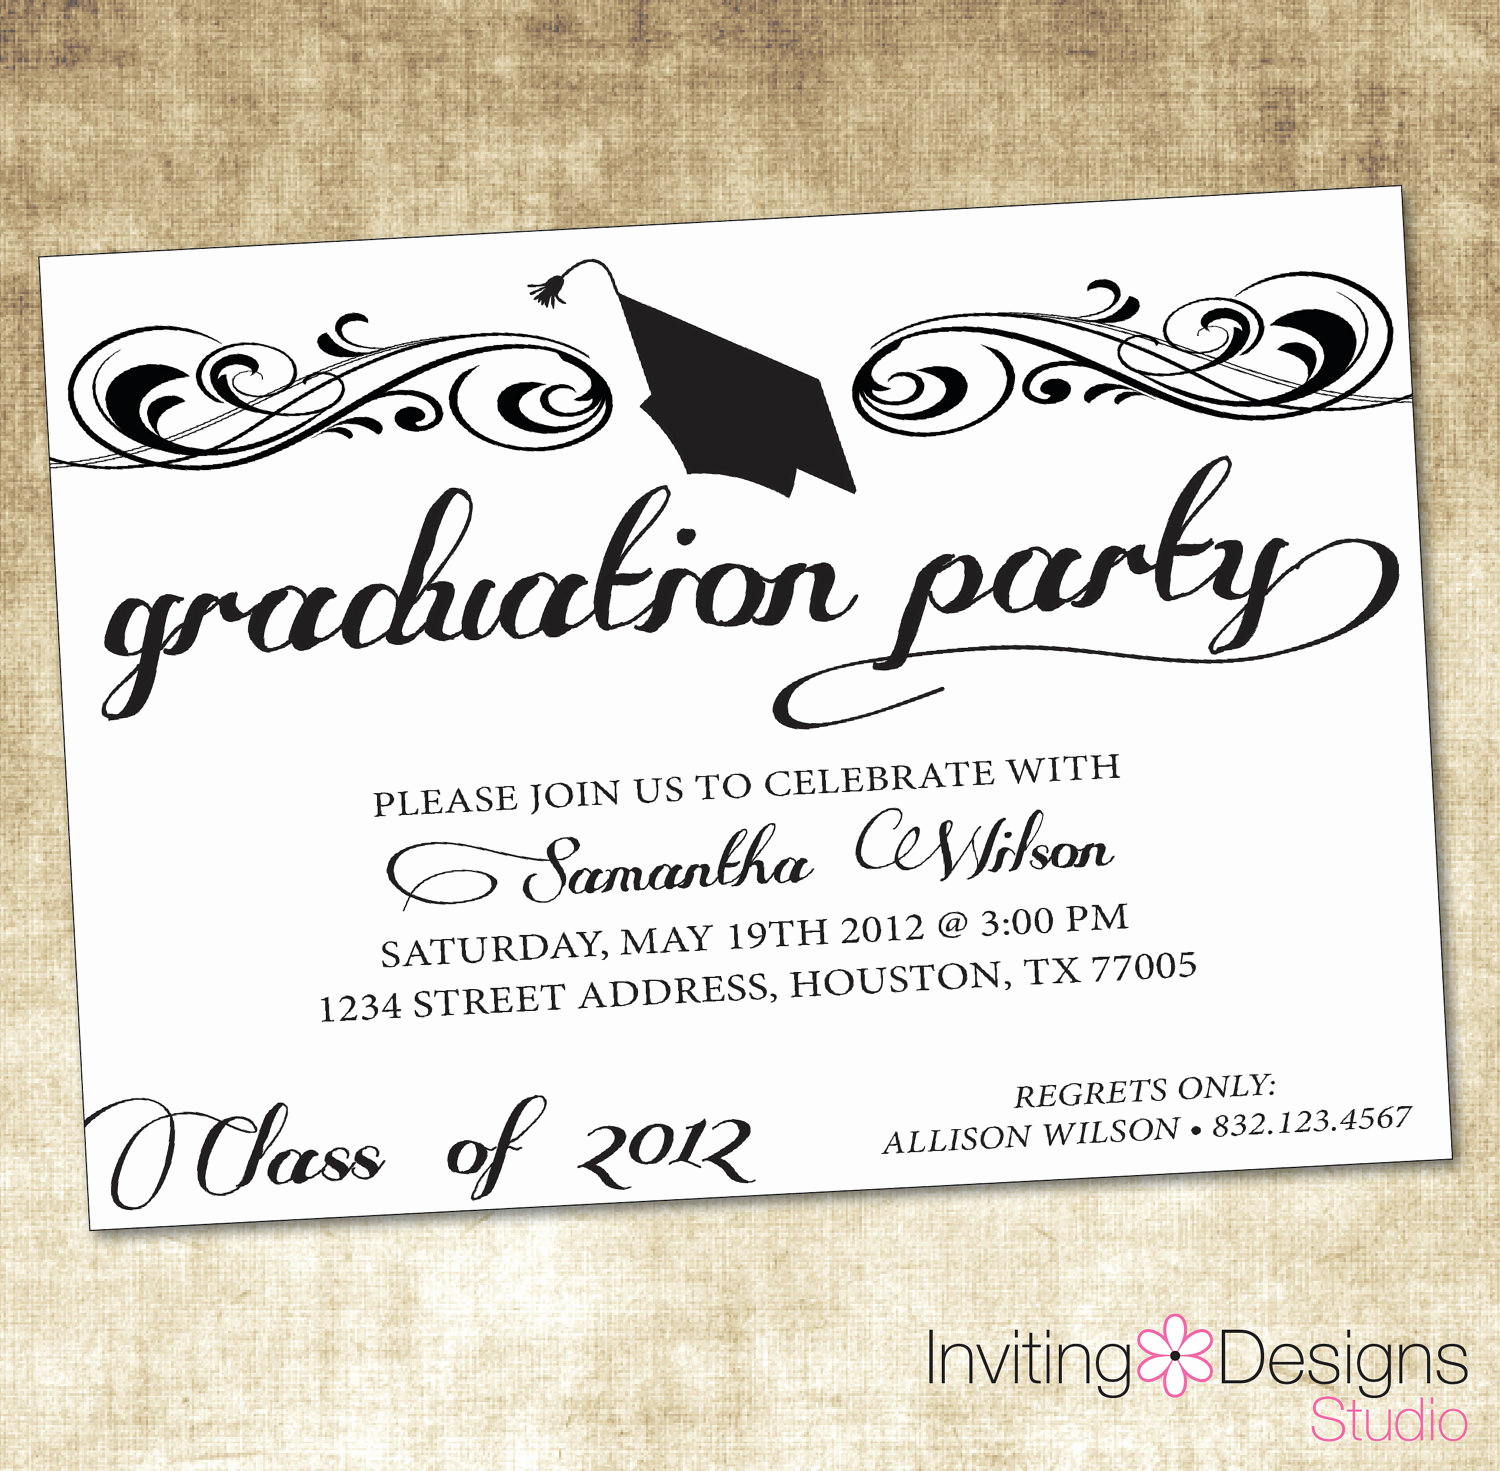 Graduation Luncheon Invitation Wording Inspirational Quotes for Graduation Party Invitations Quotesgram